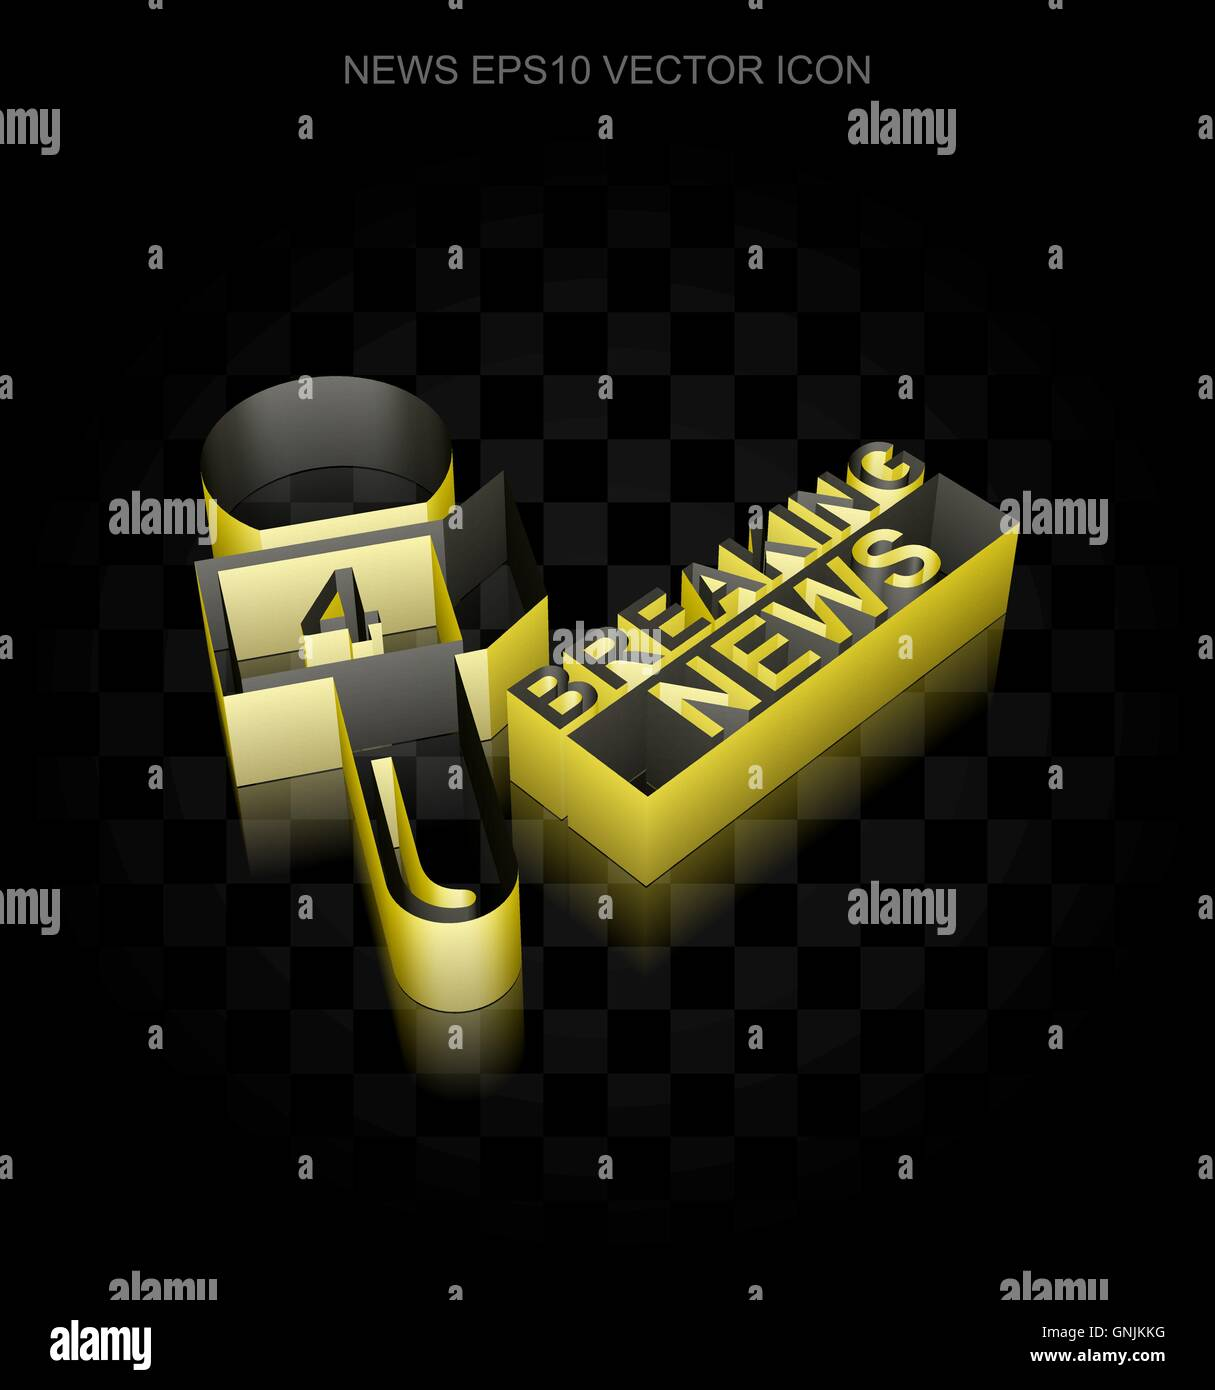 News icon: Yellow 3d Breaking News And Microphone made of paper, transparent shadow, EPS 10 vector. - Stock Image